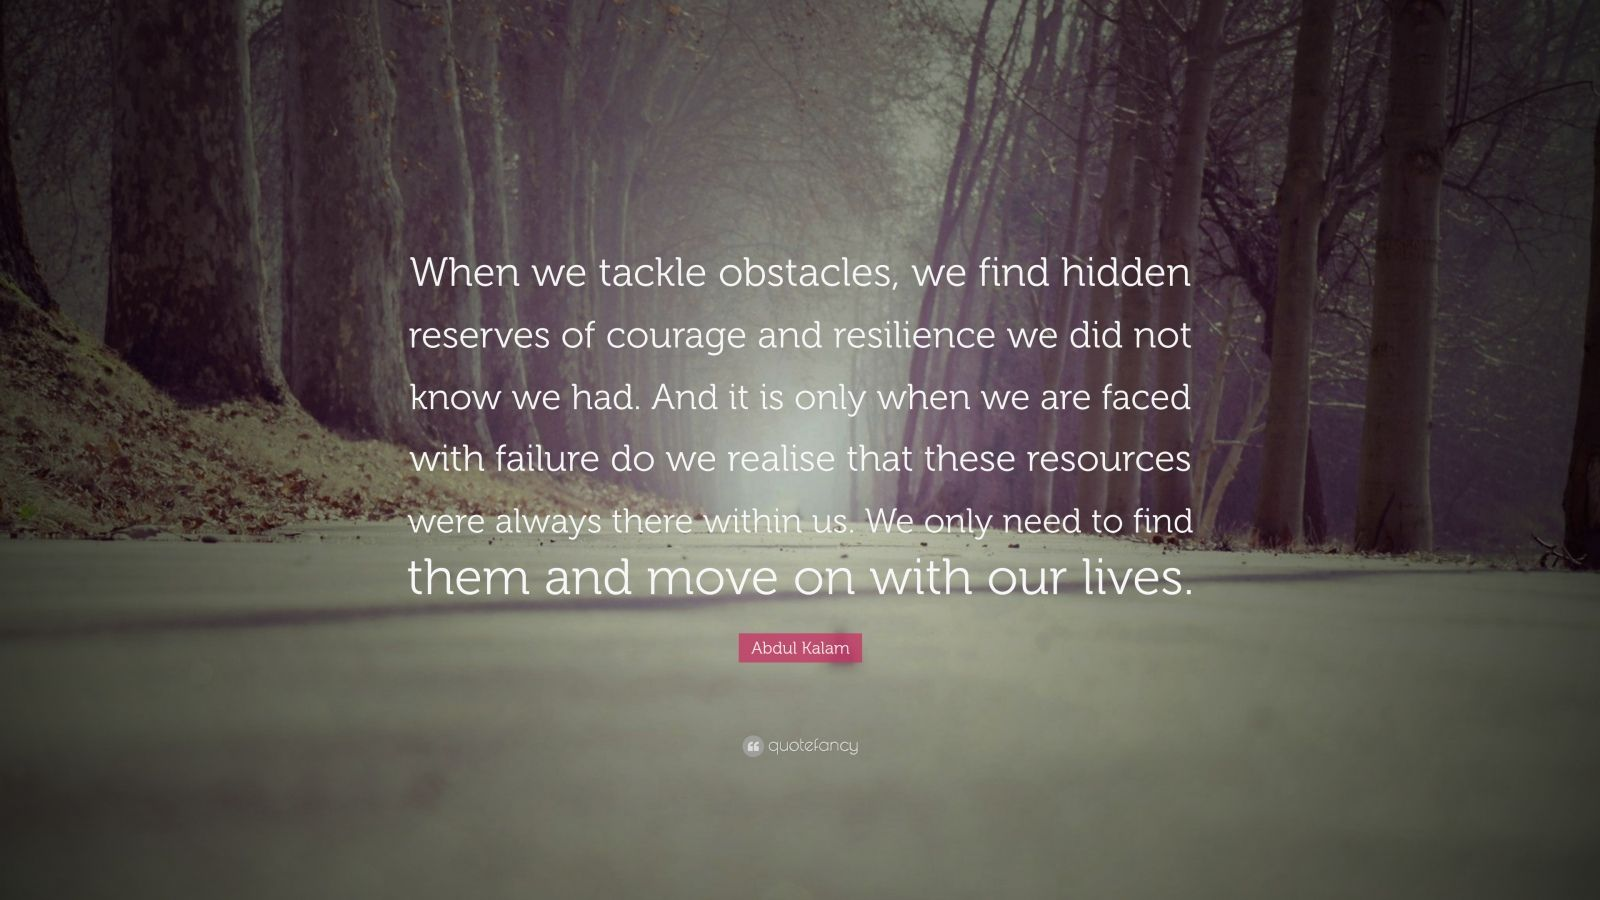 """Abdul Kalam Quote: """"When we tackle obstacles, we find hidden reserves of courage and resilience we did not know we had. And it is only when we are faced with failure do we realise that these resources were always there within us. We only need to find them and move on with our lives."""""""